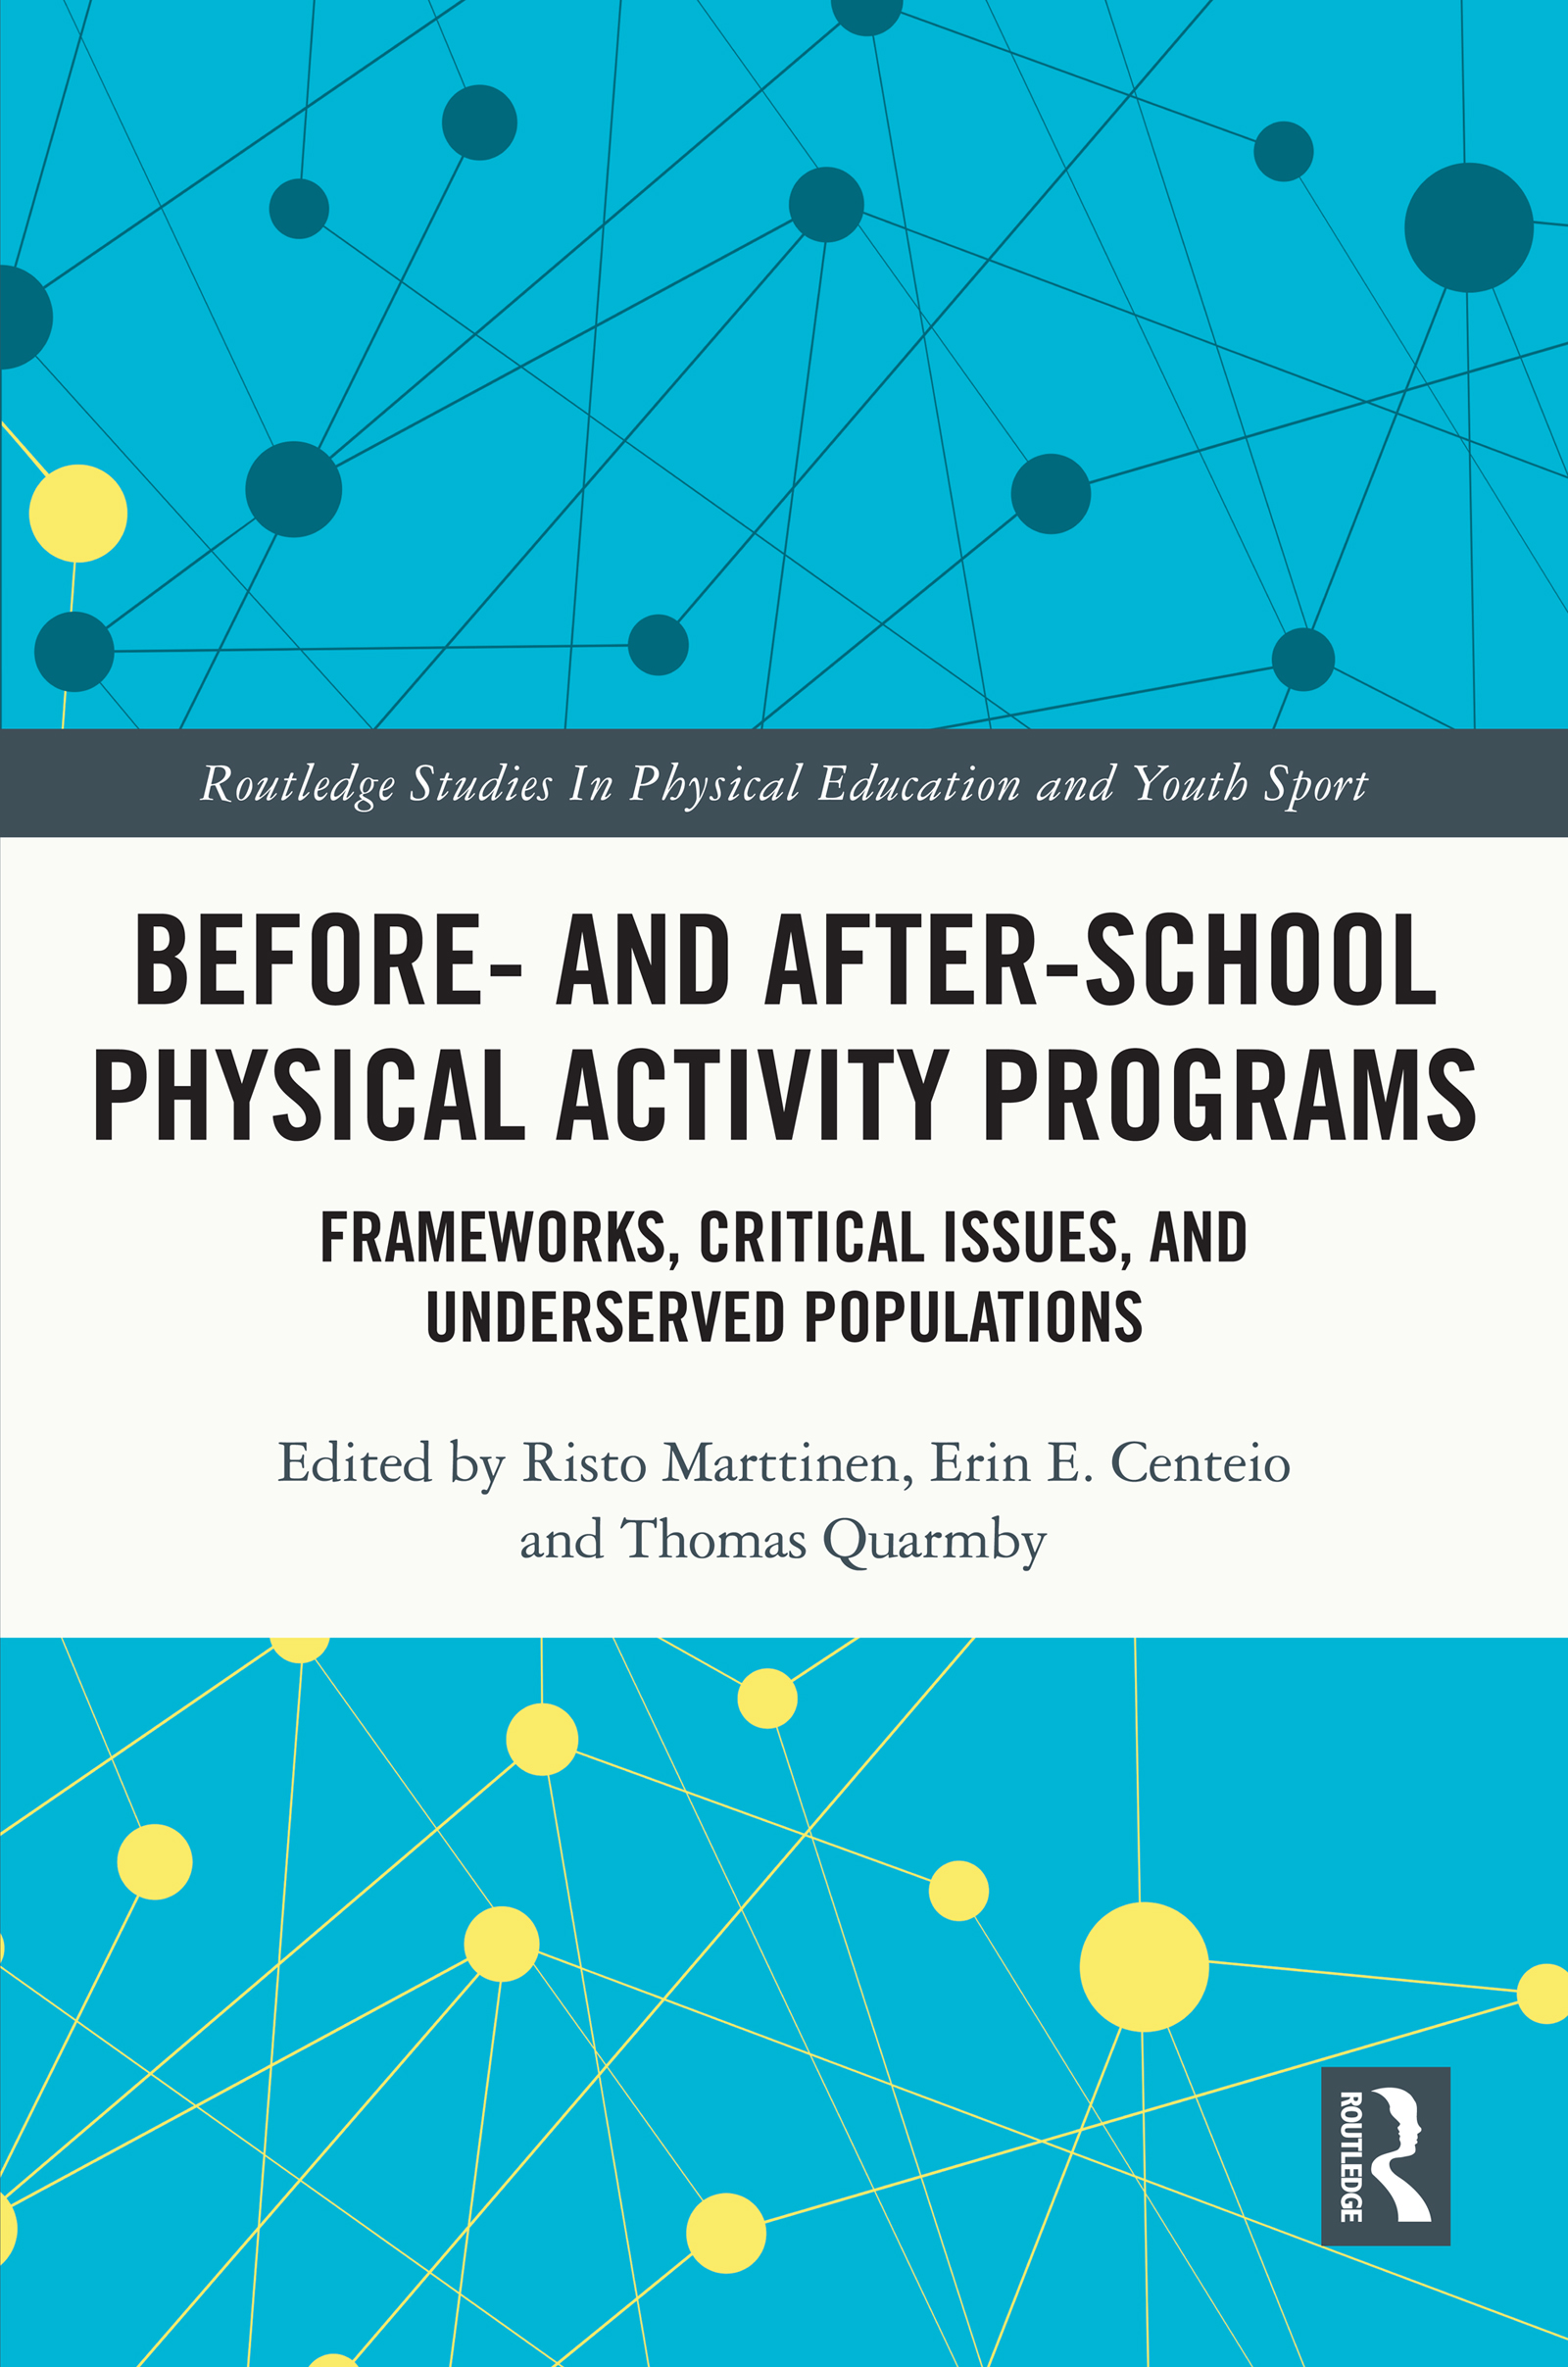 Before- and After-School Physical Activity Programs